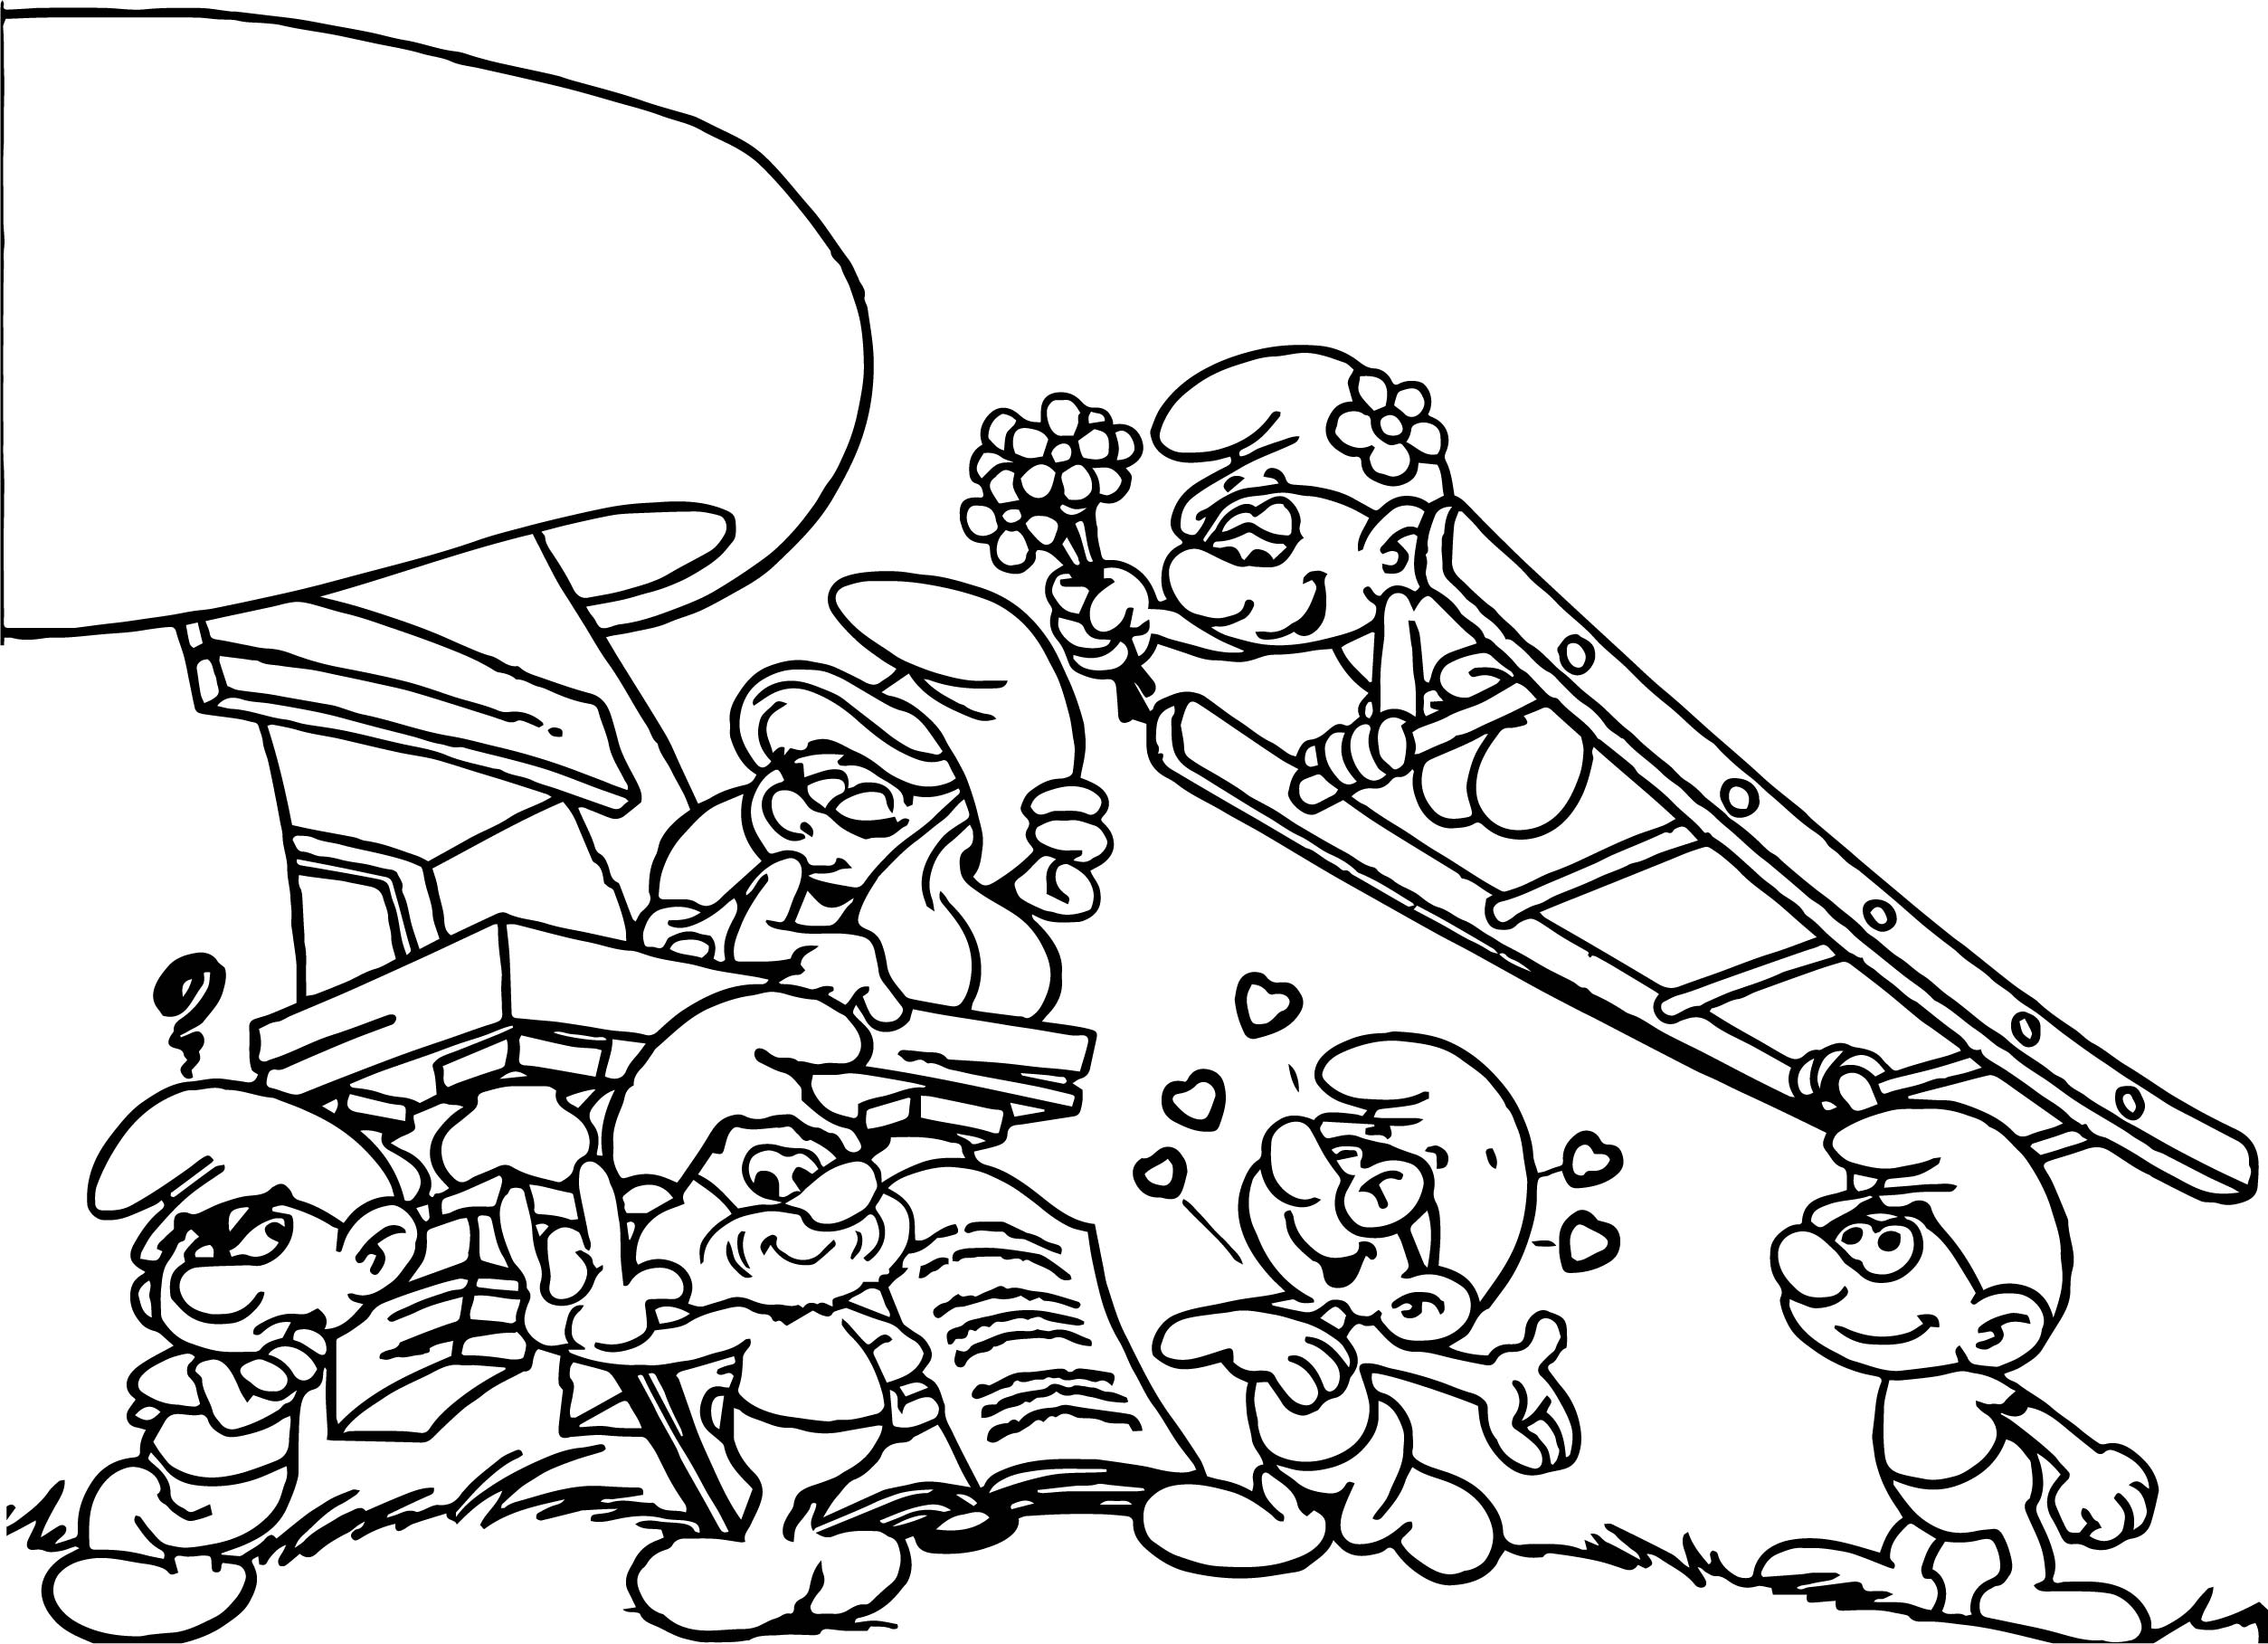 Smurf Scene Coloring Page